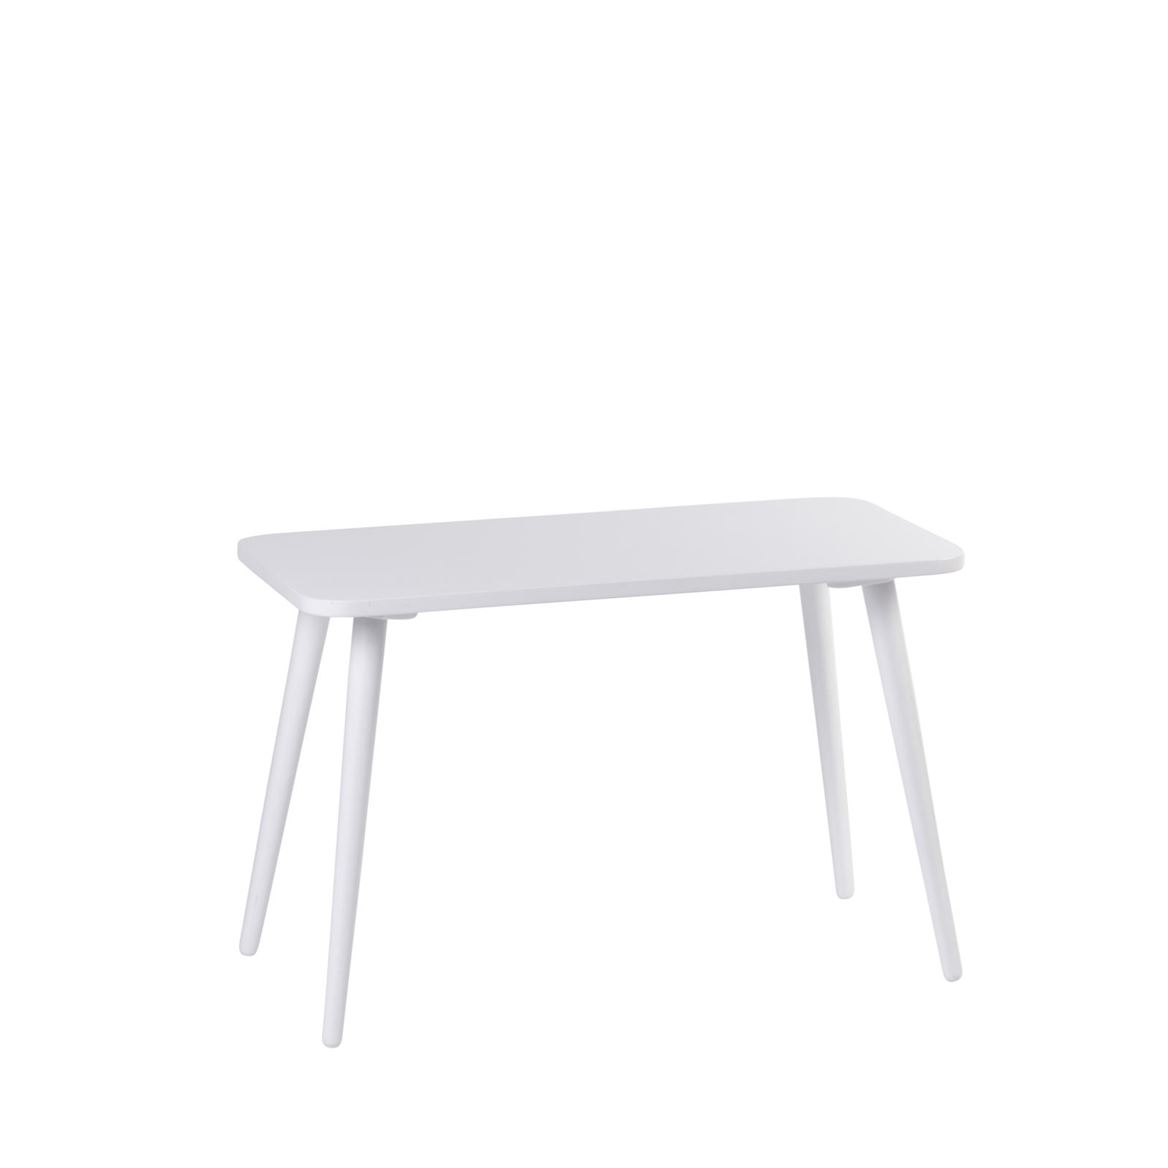 ARNI Table pour enfants naturel H 45 x Larg. 34.5 x Long. 70 cm_arni-table-pour-enfants-naturel-h-45-x-larg--34-5-x-long--70-cm